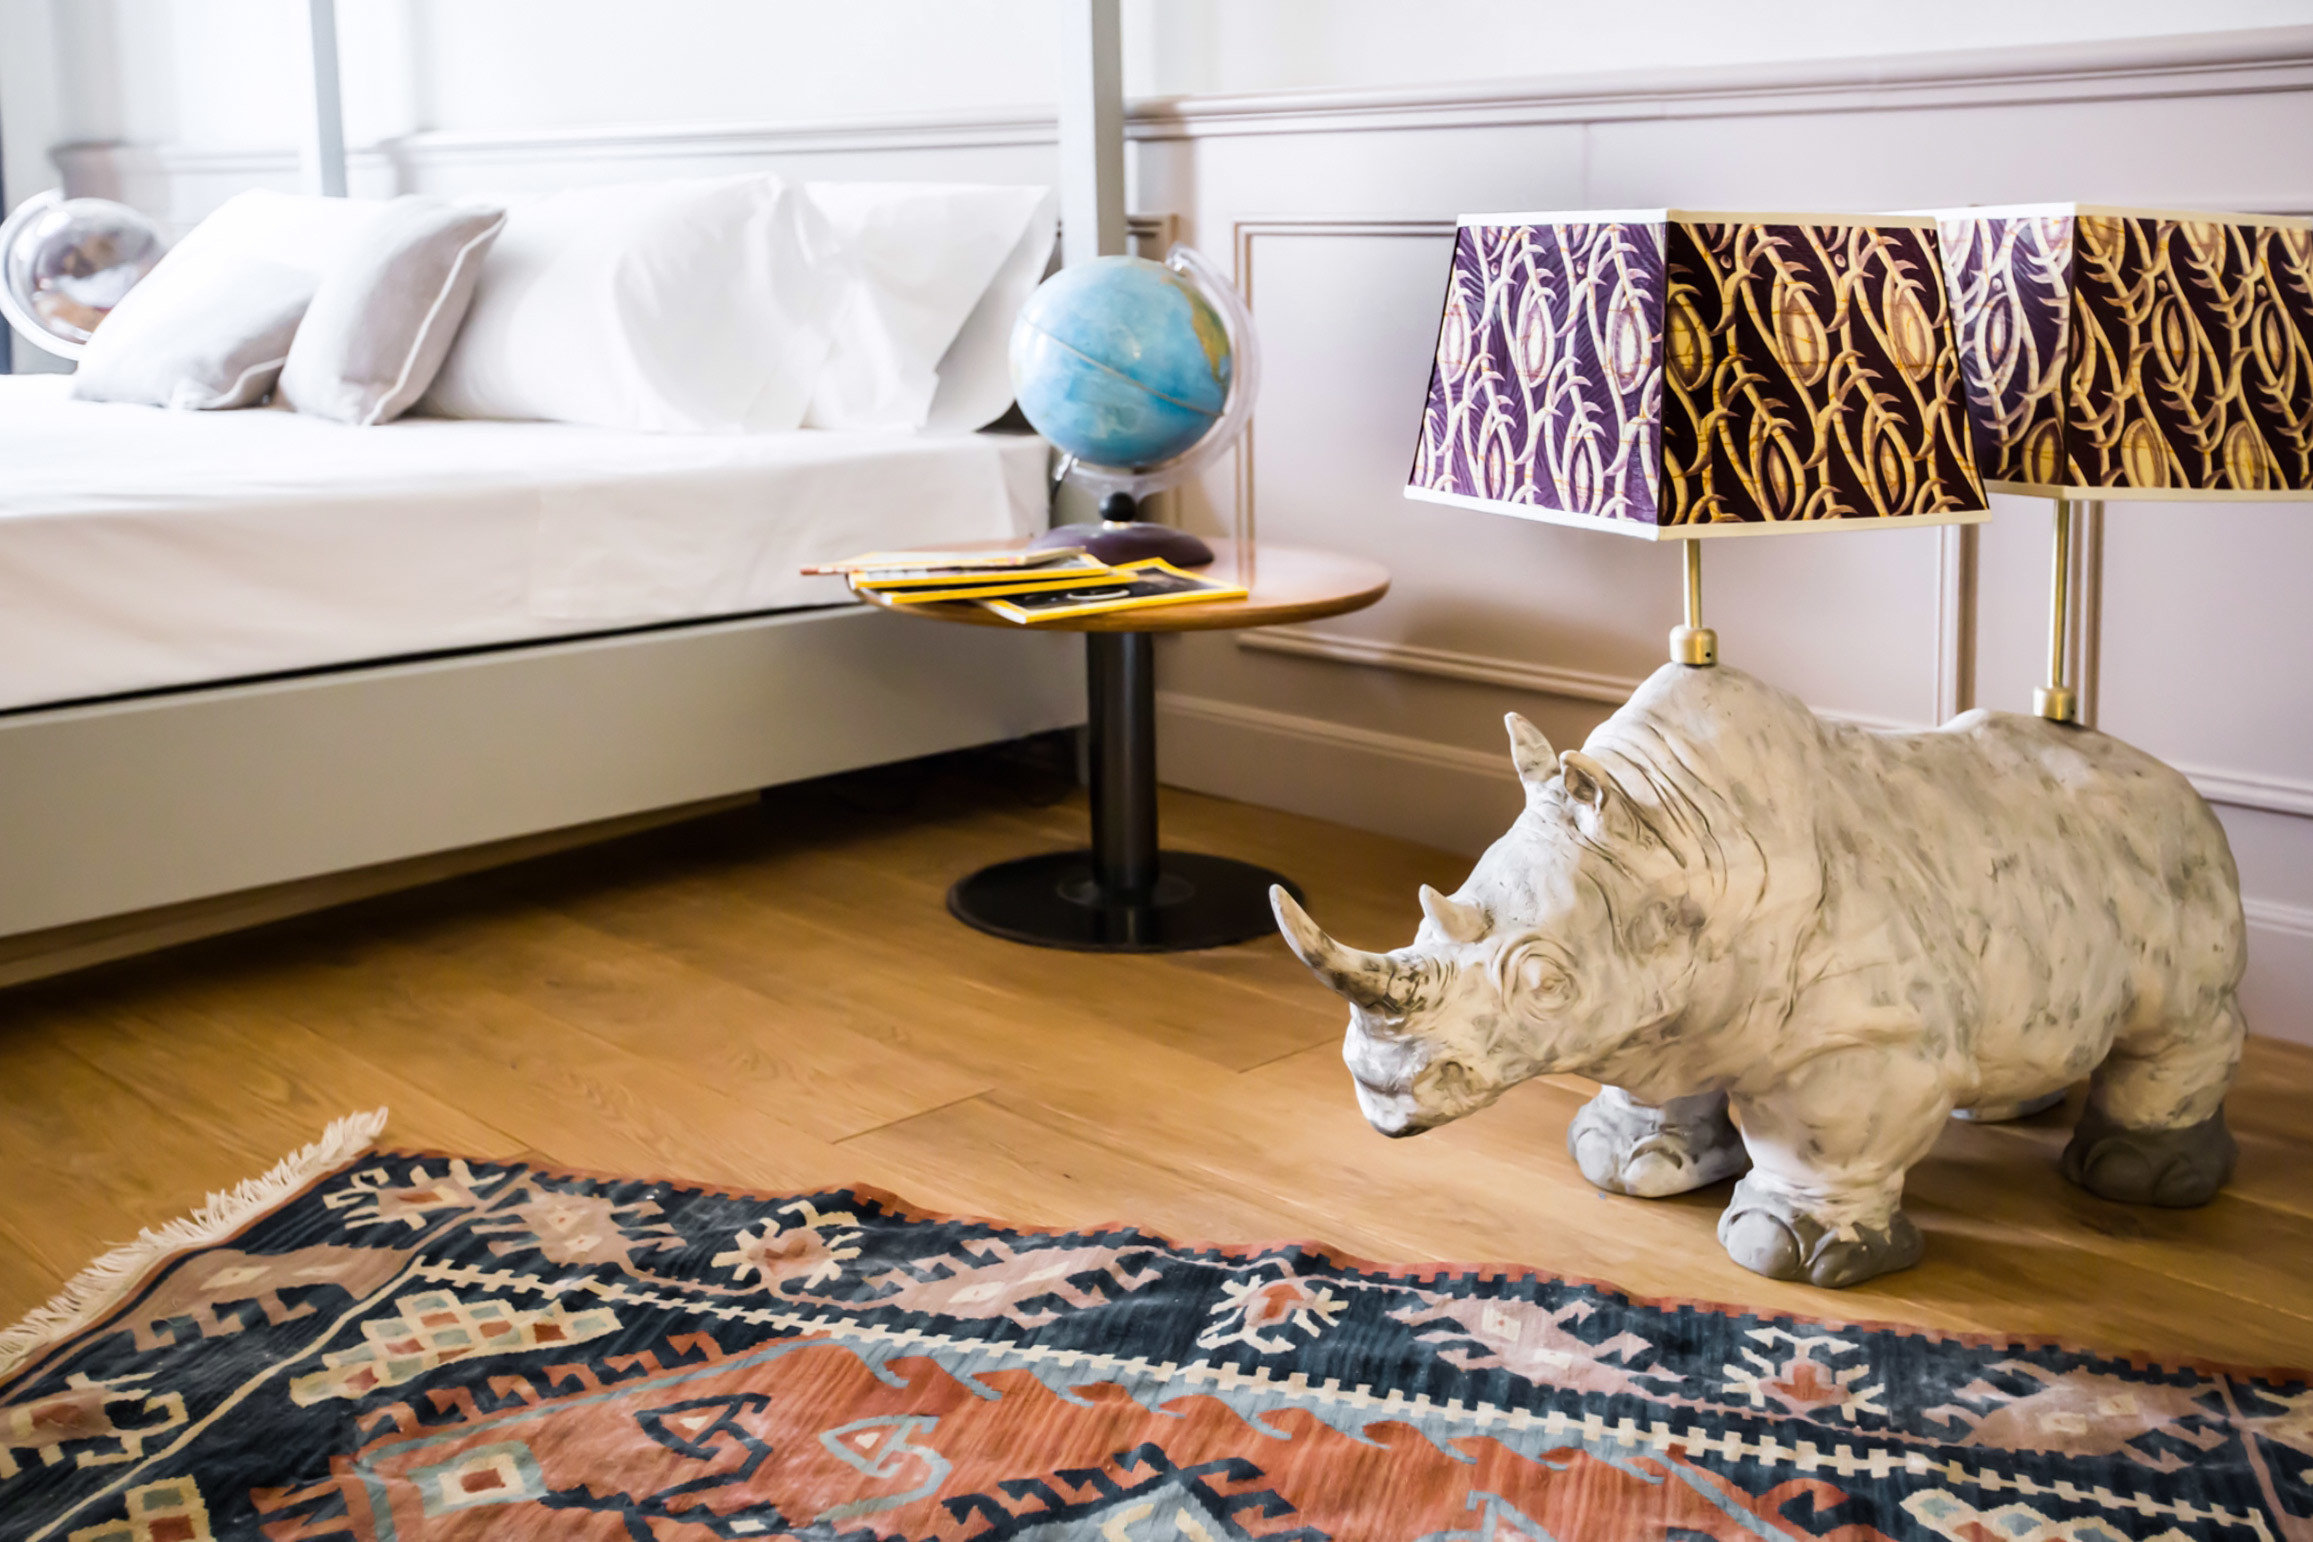 Bedroom City Design Florence Hotels Italy Living Luxury Suite indoor floor cat room flooring living room table interior design cat like mammal furniture textile small to medium sized cats bedclothes